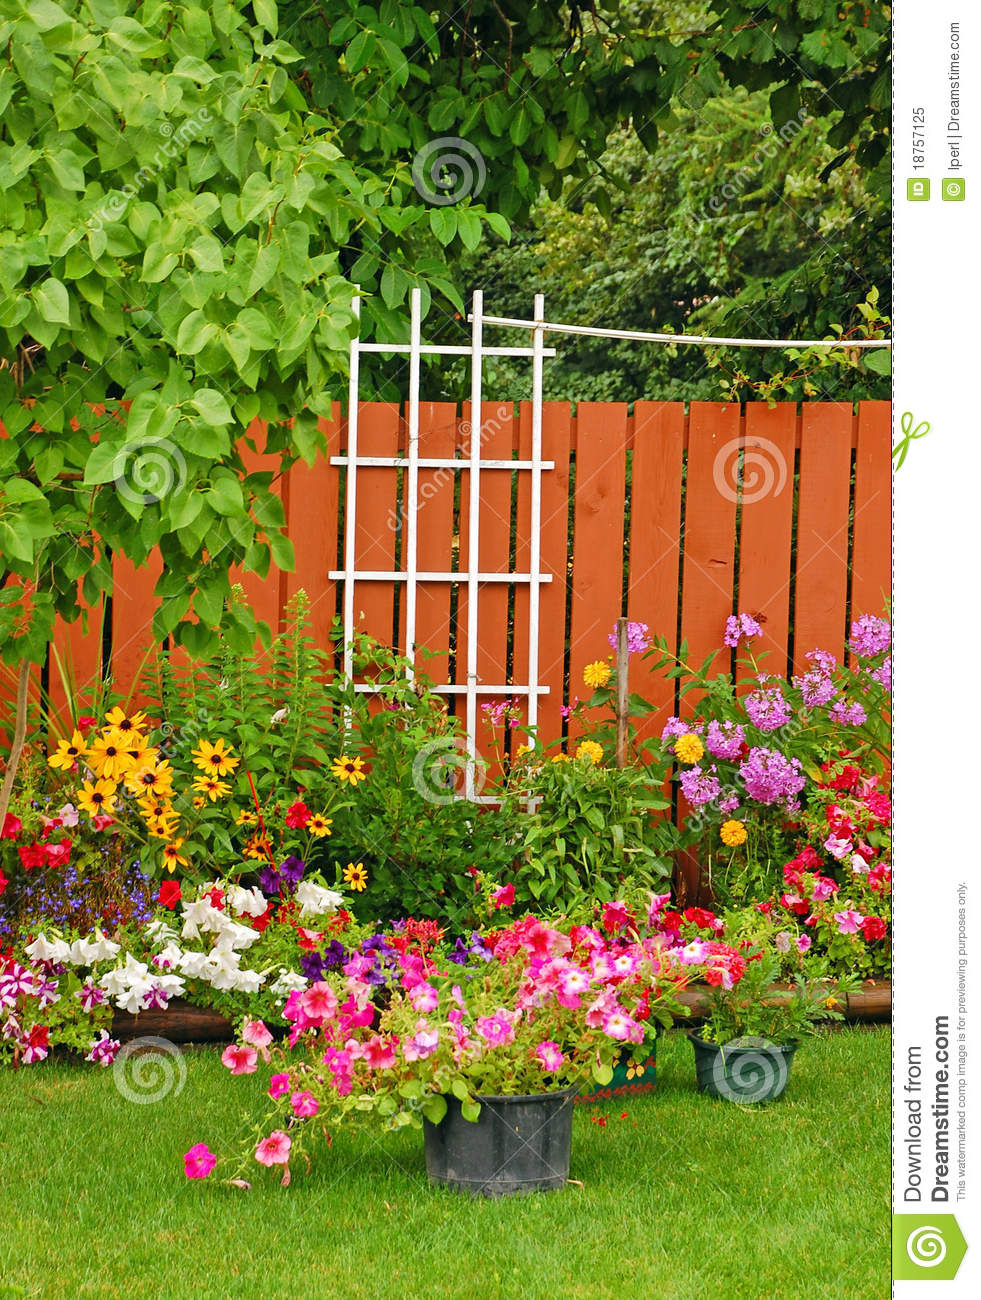 Colorful backyard garden royalty free stock photo image for Gardening and landscaping